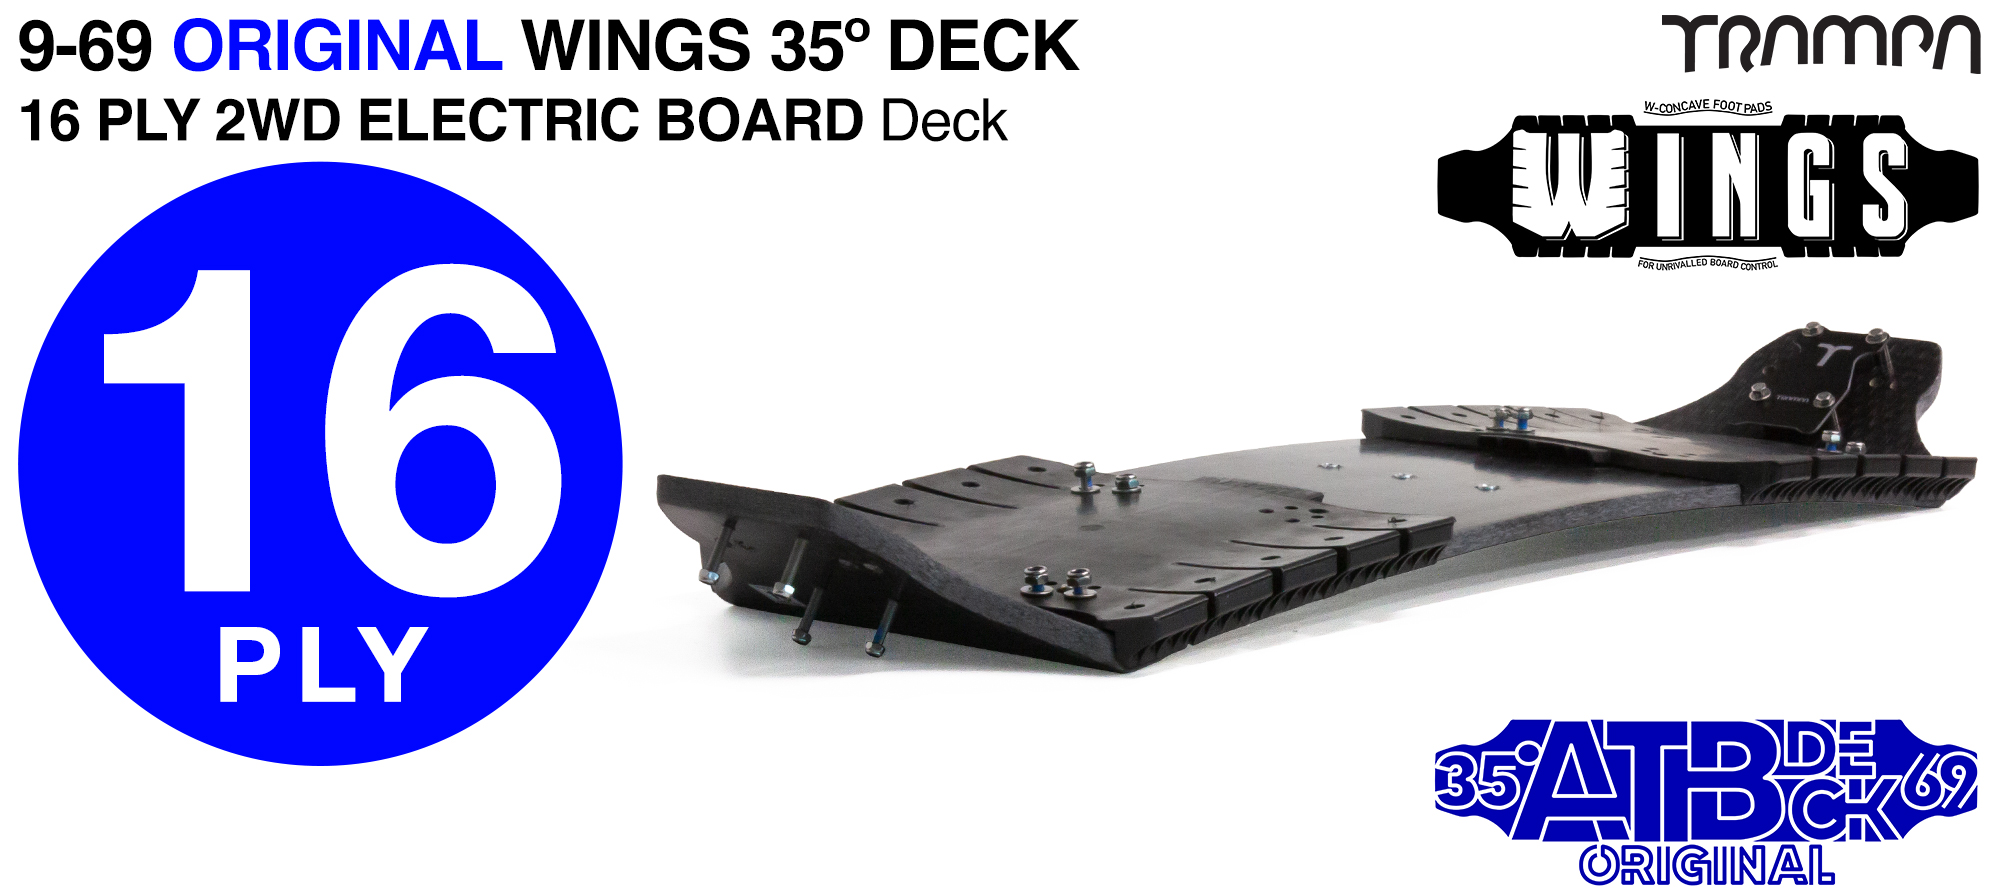 16ply 9-69 Mountainboard Deck with WINGS & 2WD Cable Router - Firm